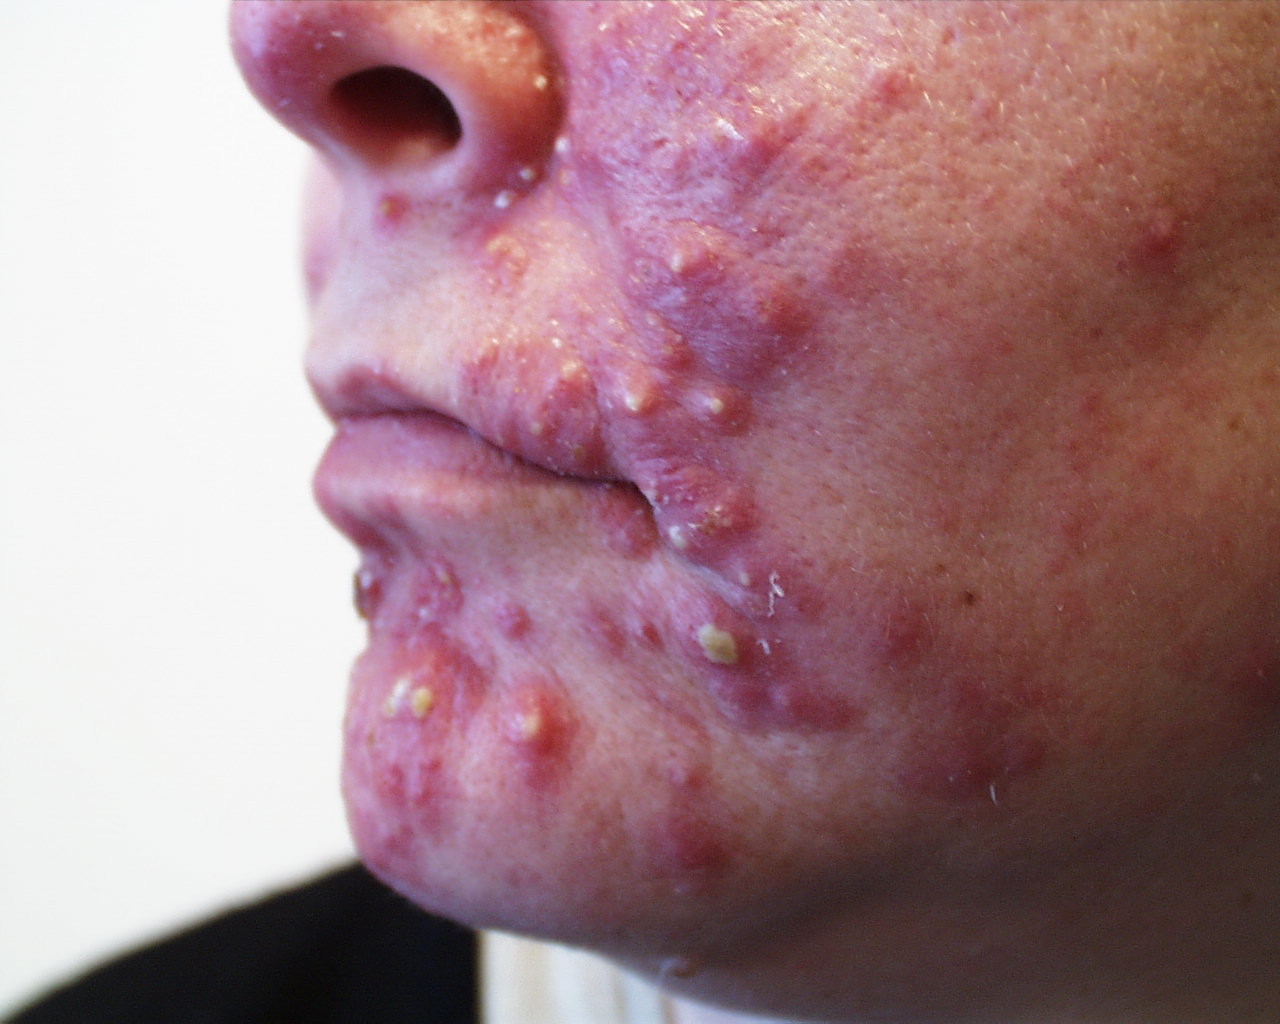 acne as an adult